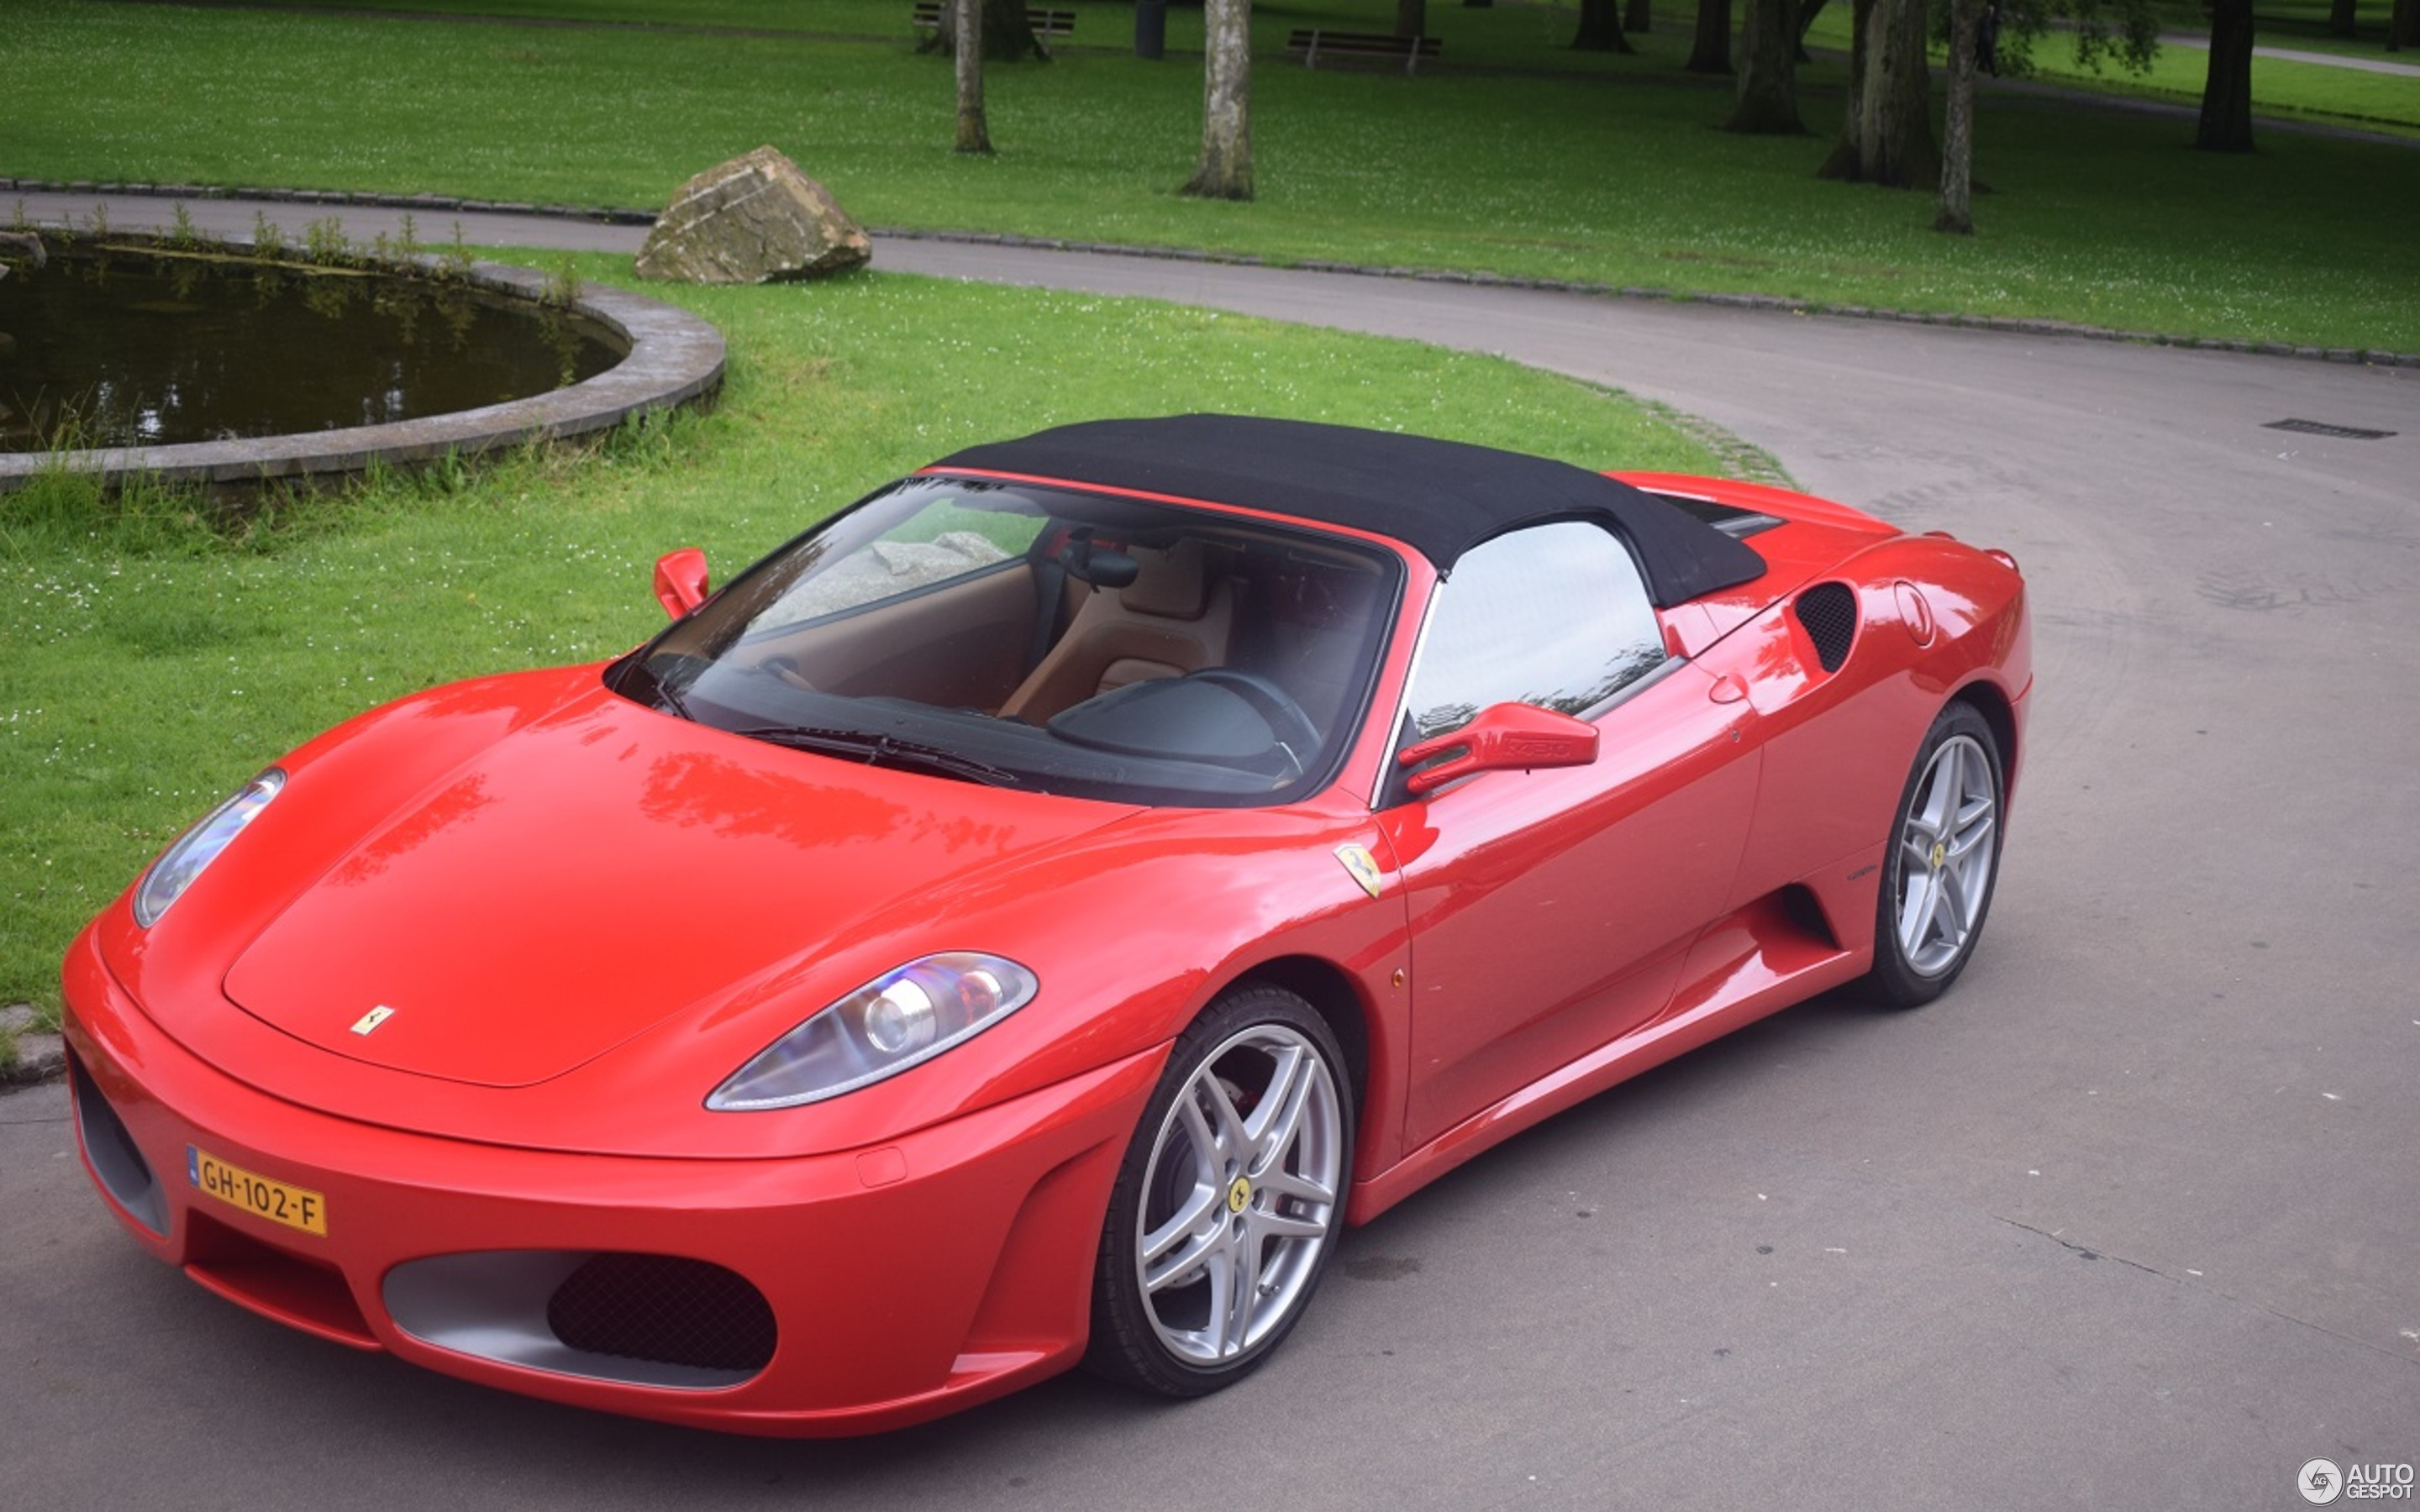 Ferrari F430 Spider - 30 January 2017 - Auspot